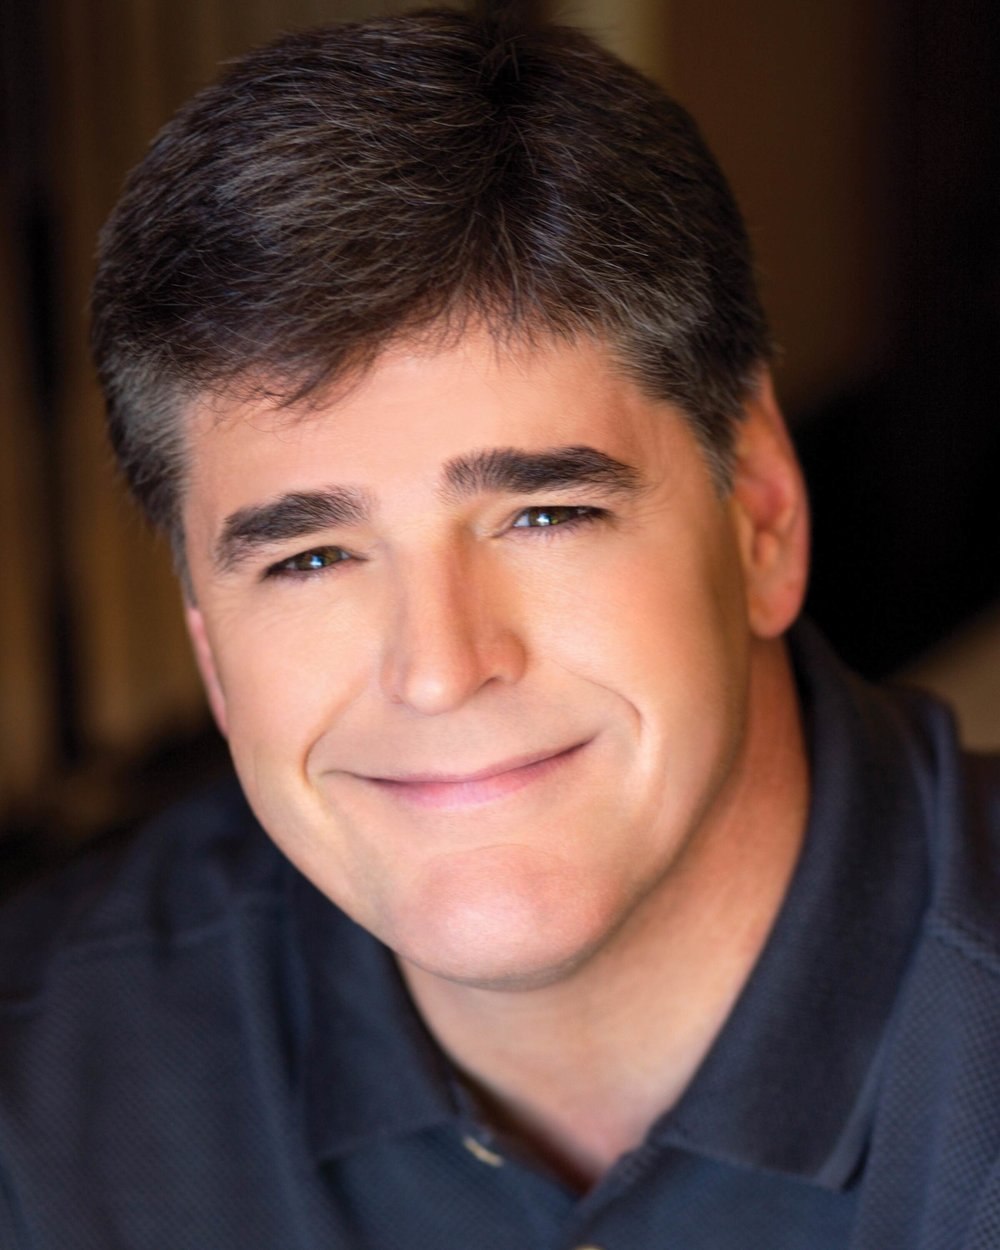 Sean Hannity Photo.jpg